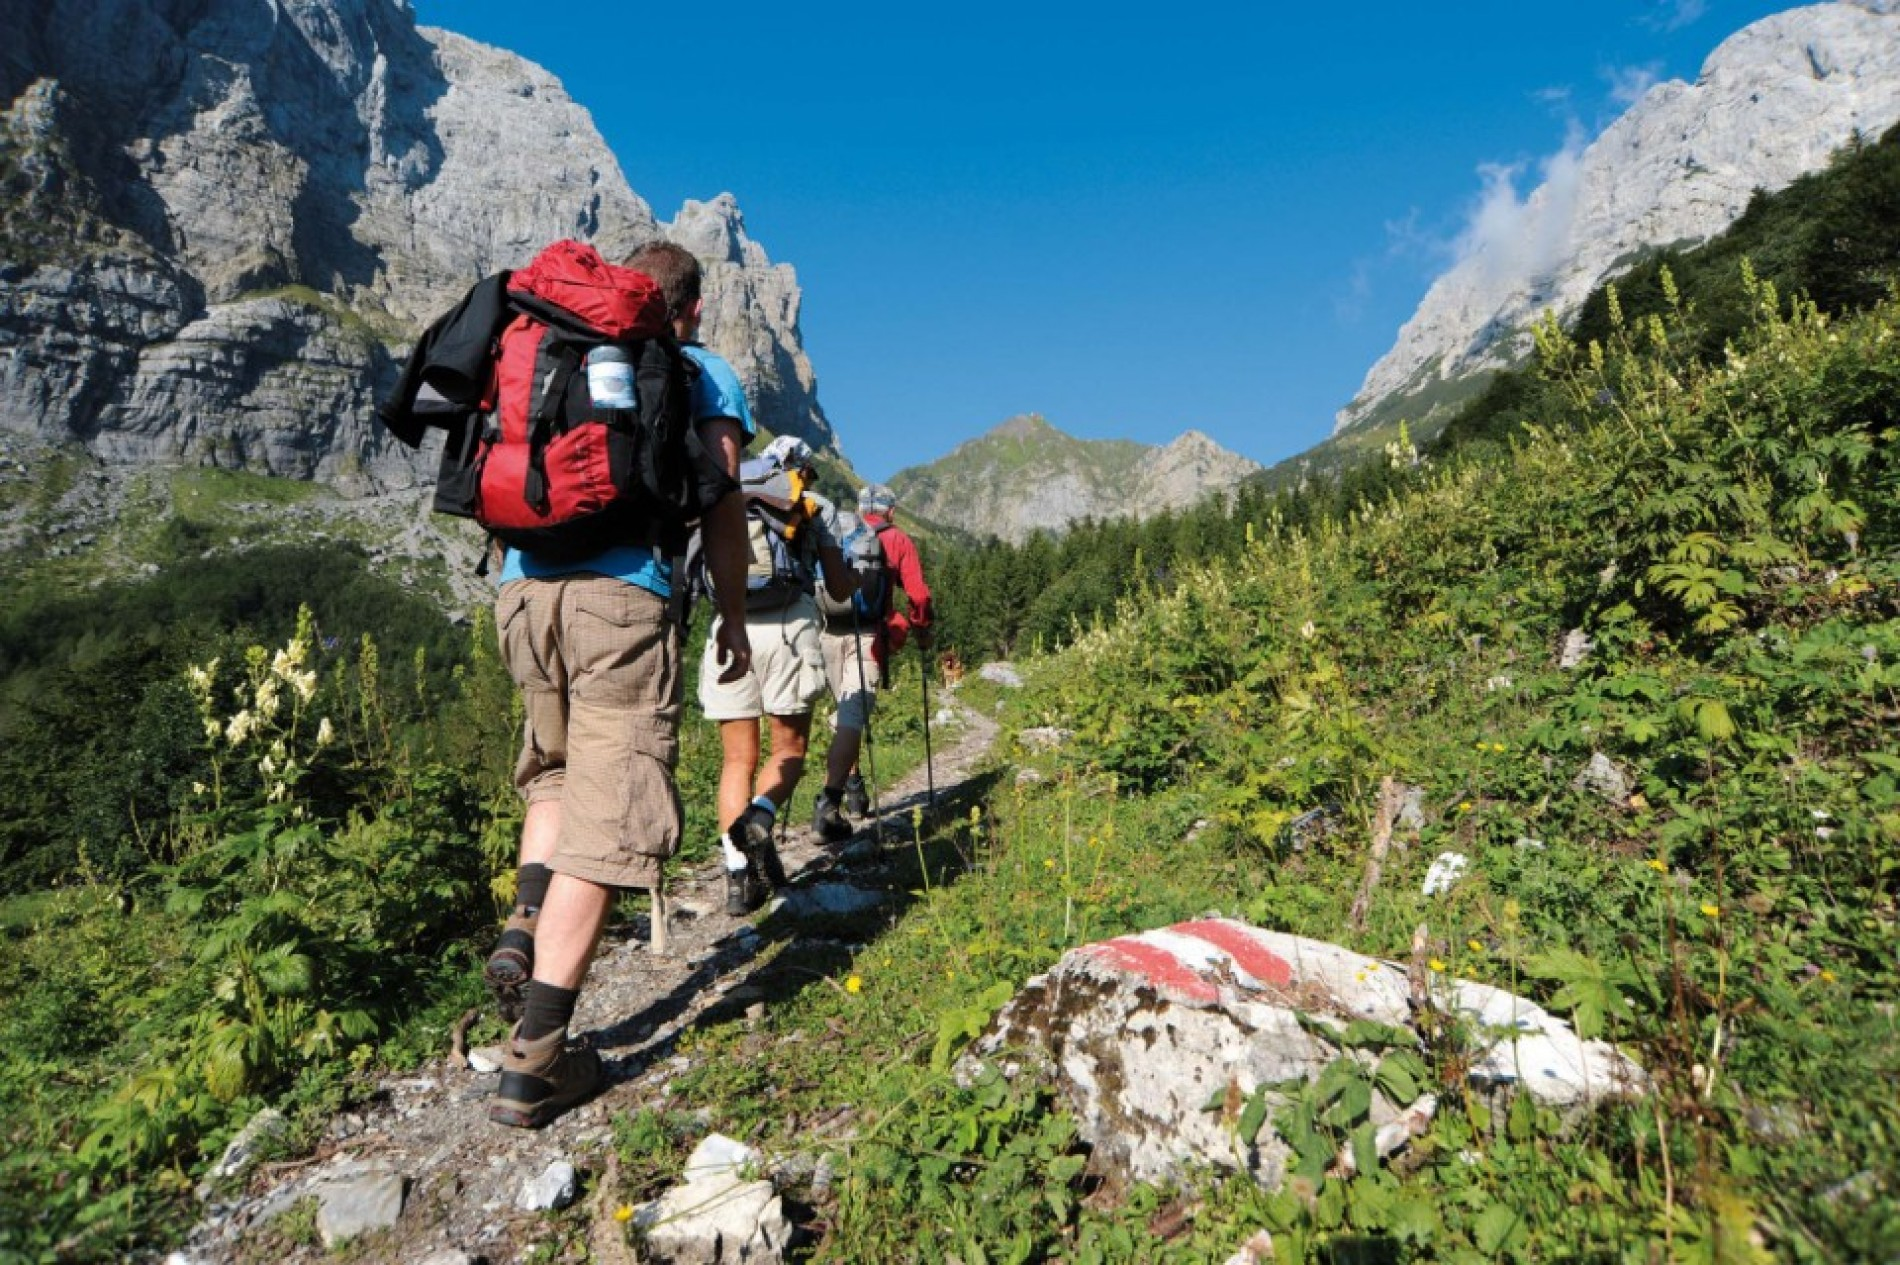 THE 'RIGHT' BACKPACK FOR TREKKING AND HIKING